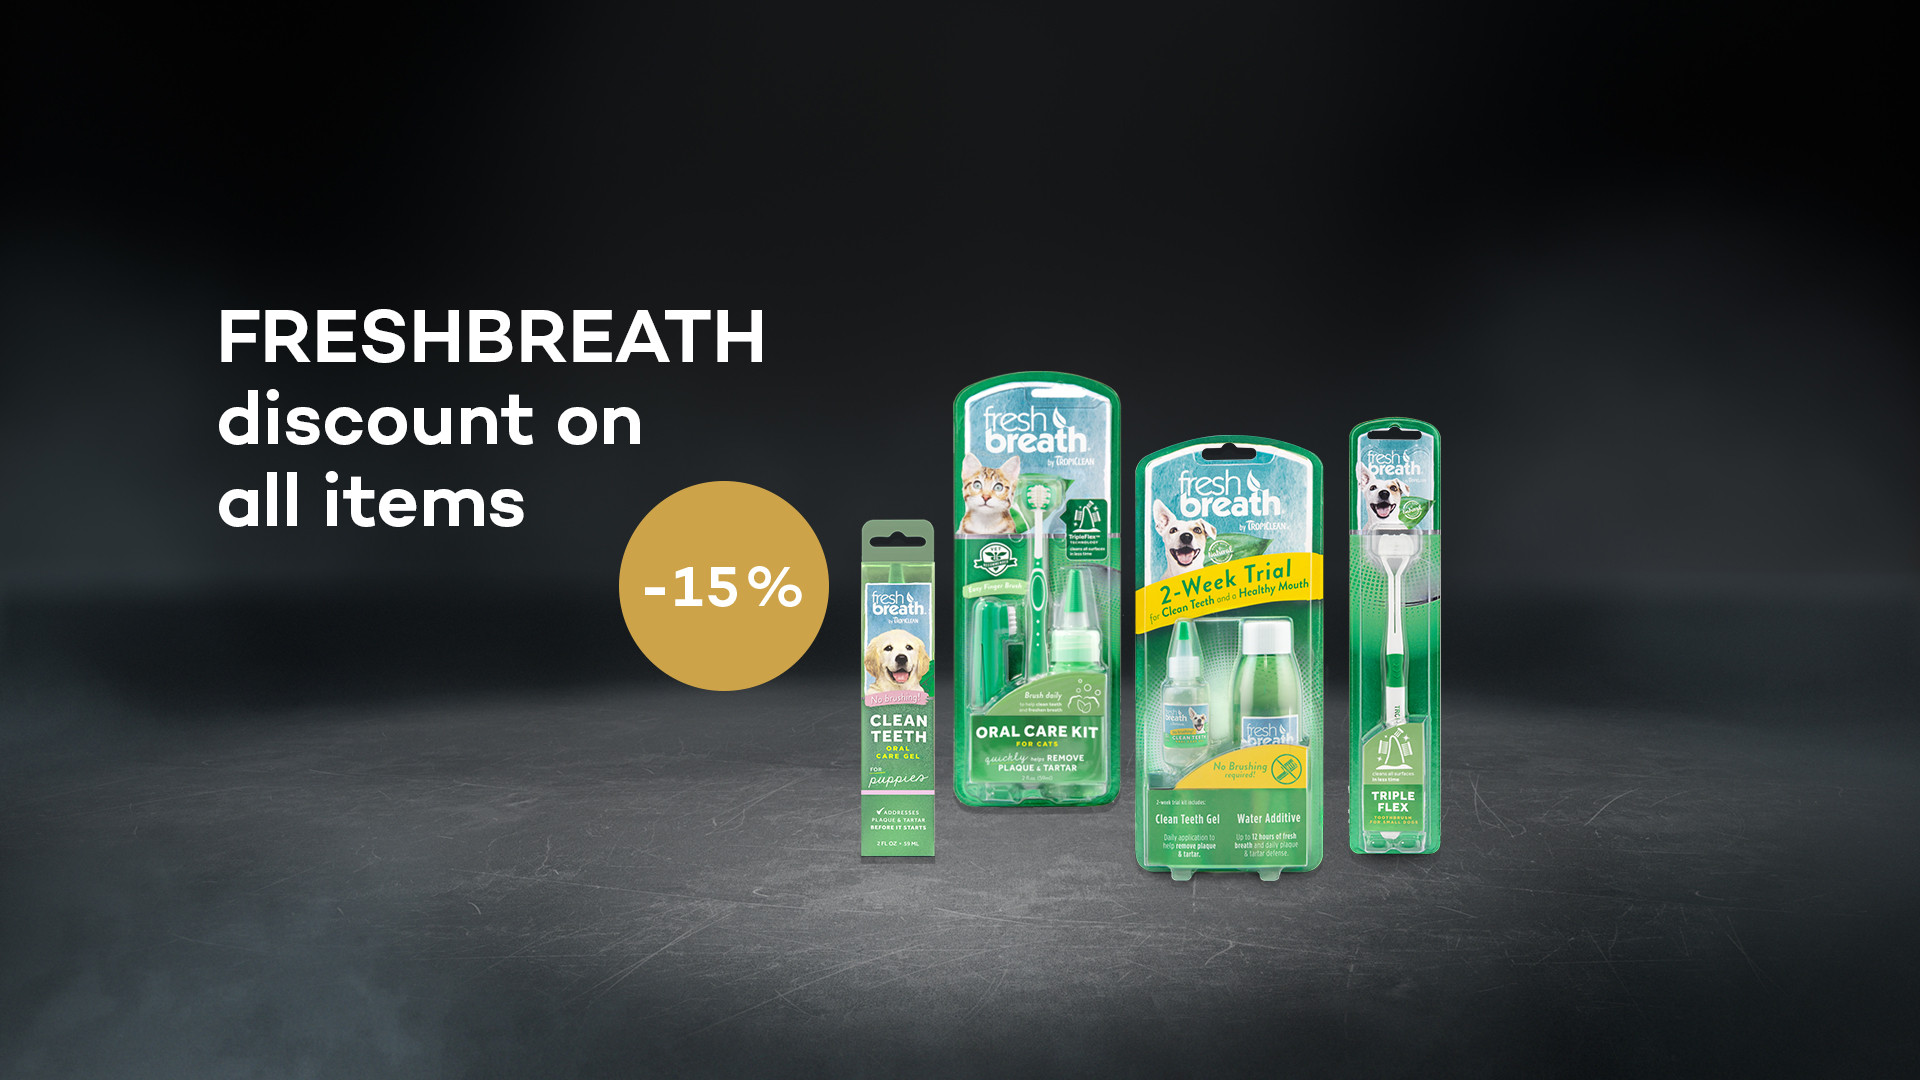 TPL FRESHBREATH 15% discount on all items